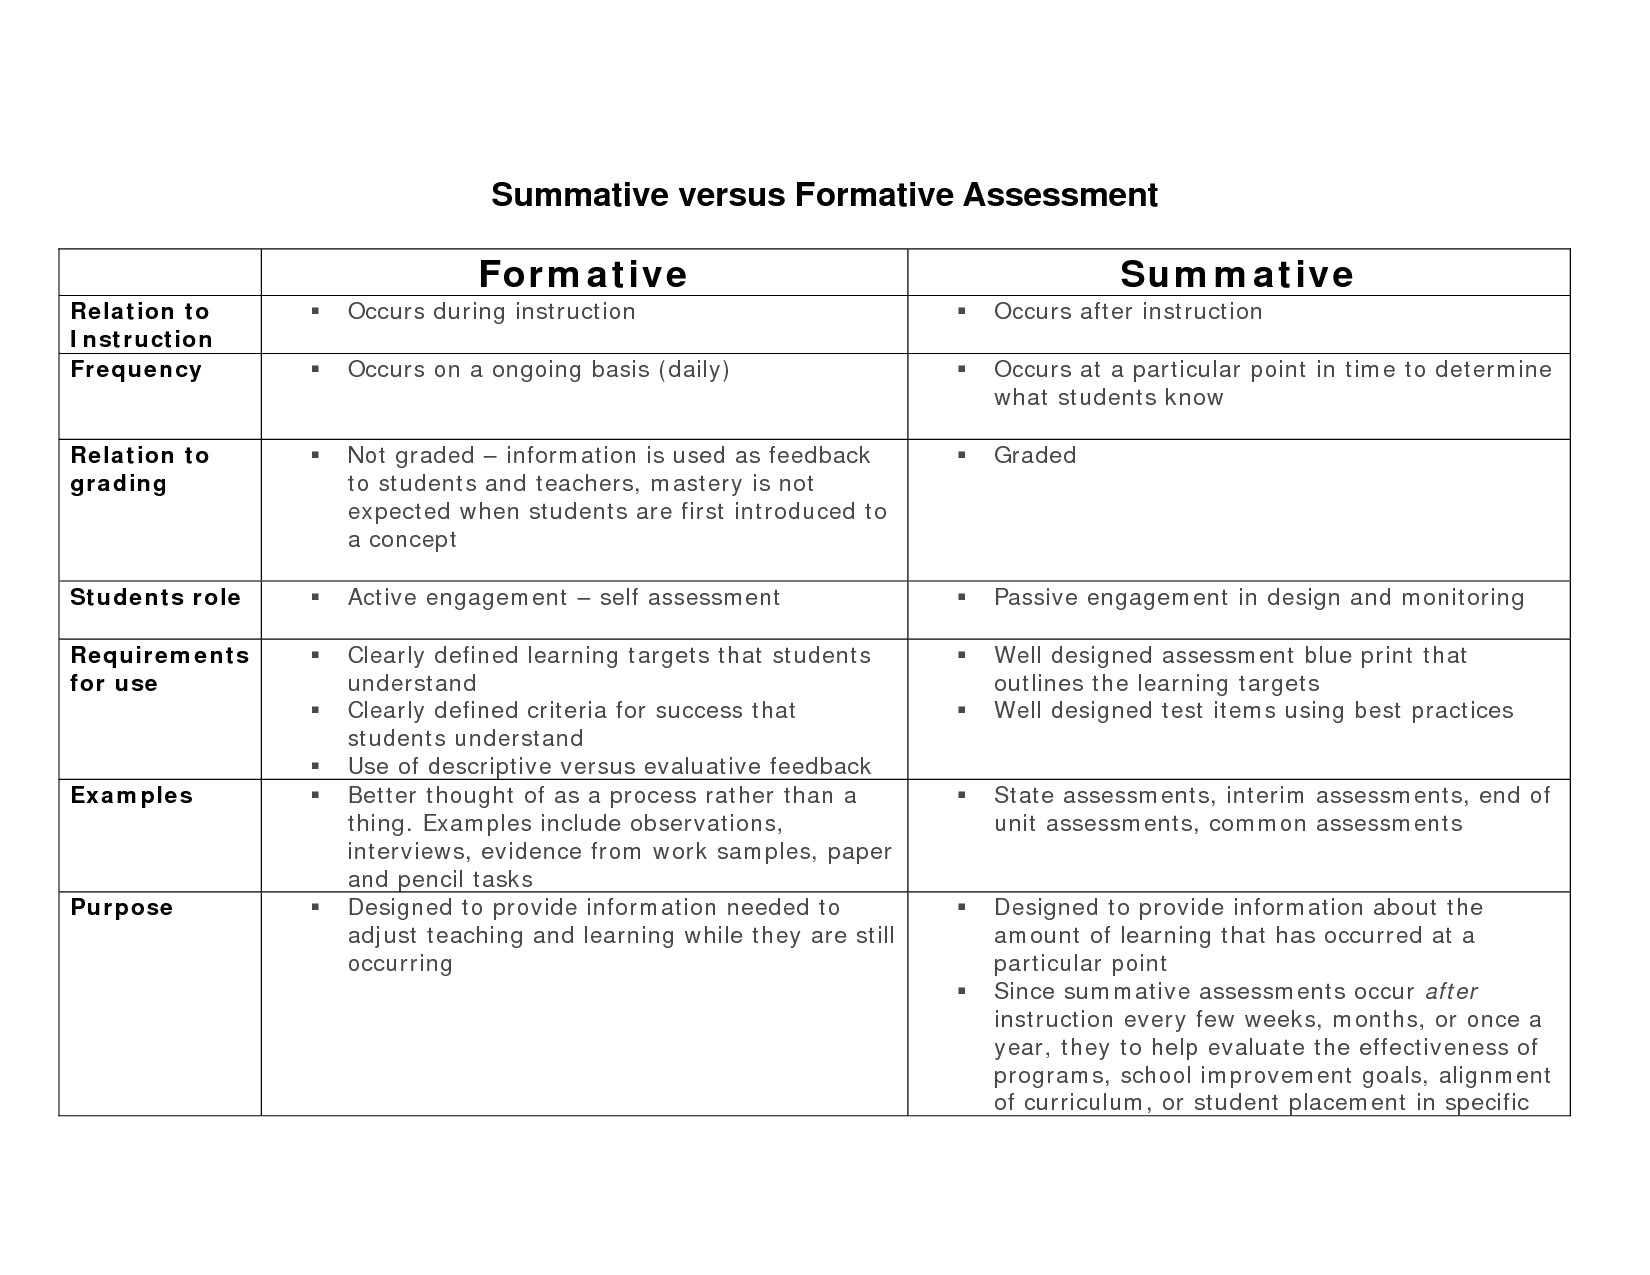 Summative assessment Template formative Vs Summative assessment Team Of Collaborators